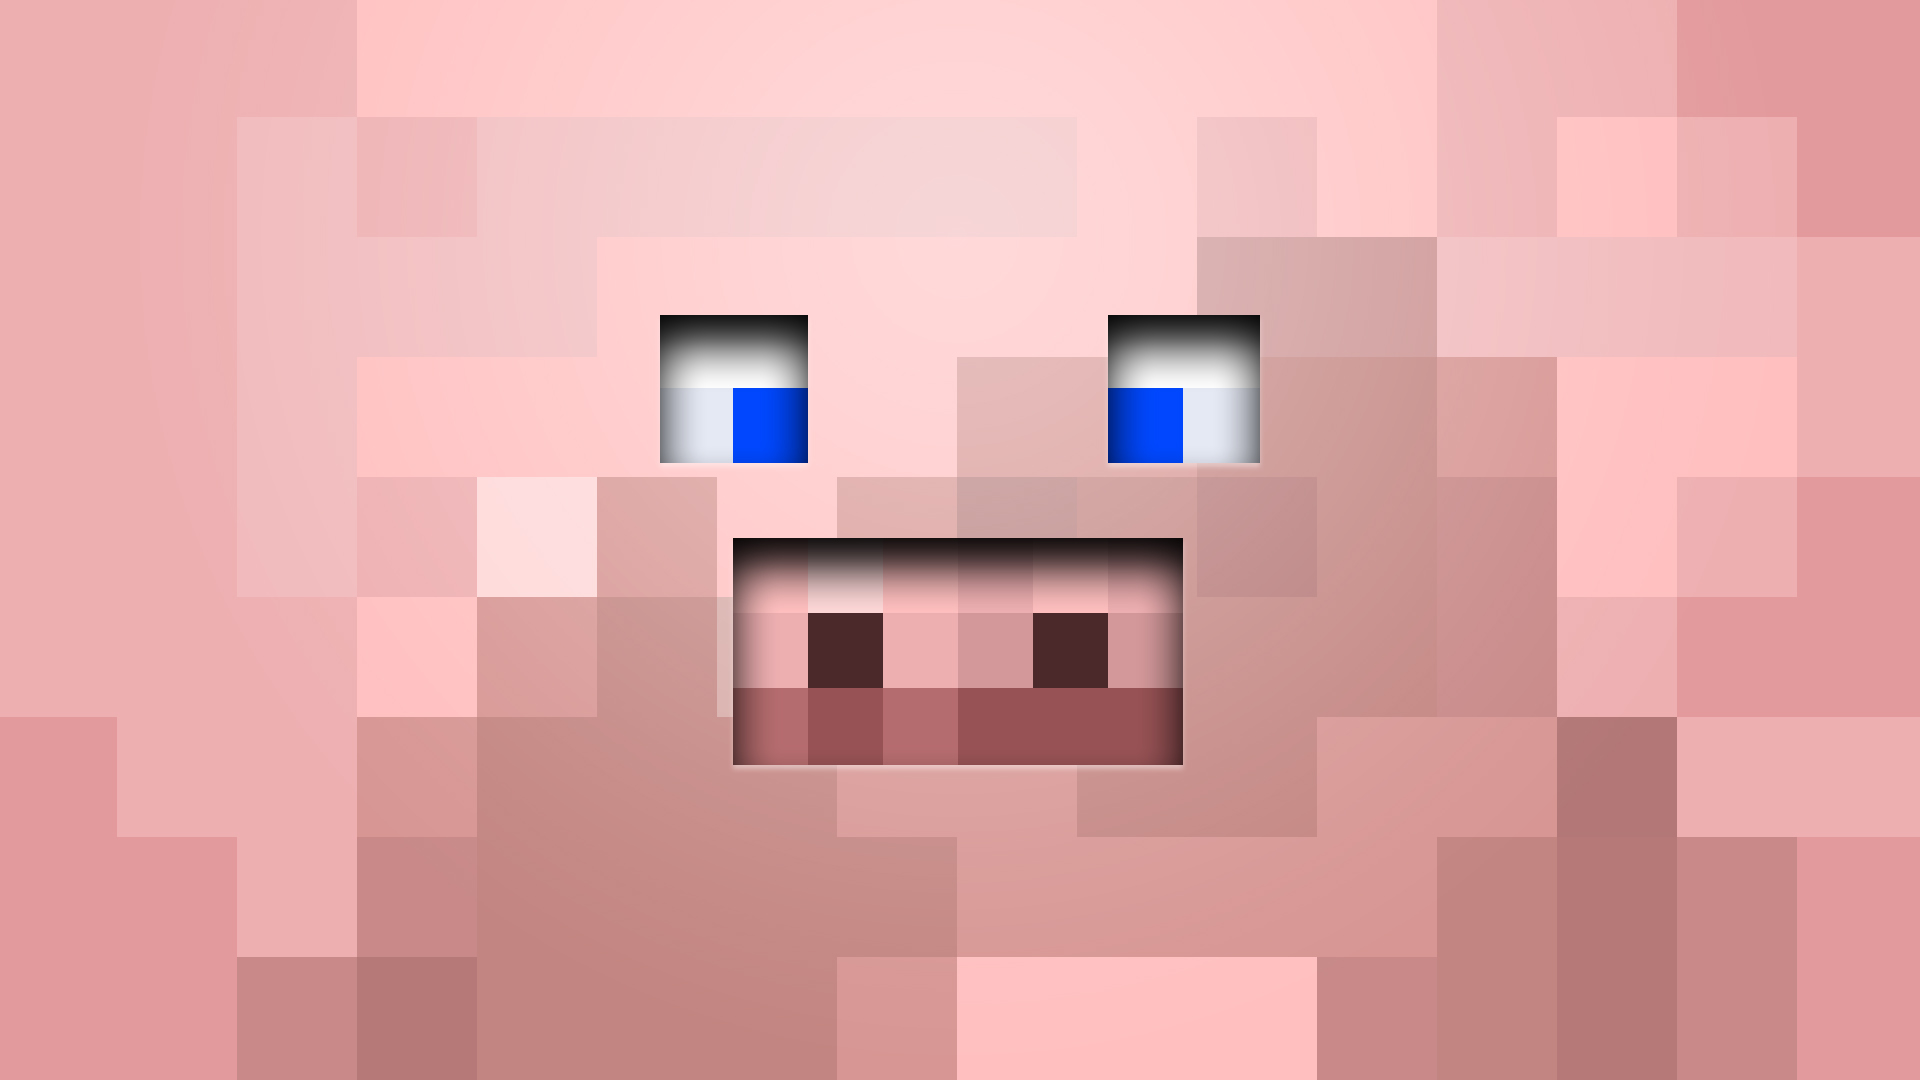 Minecraft Pig Google Skins Minecraft Pig Google Backgrounds 1920x1080